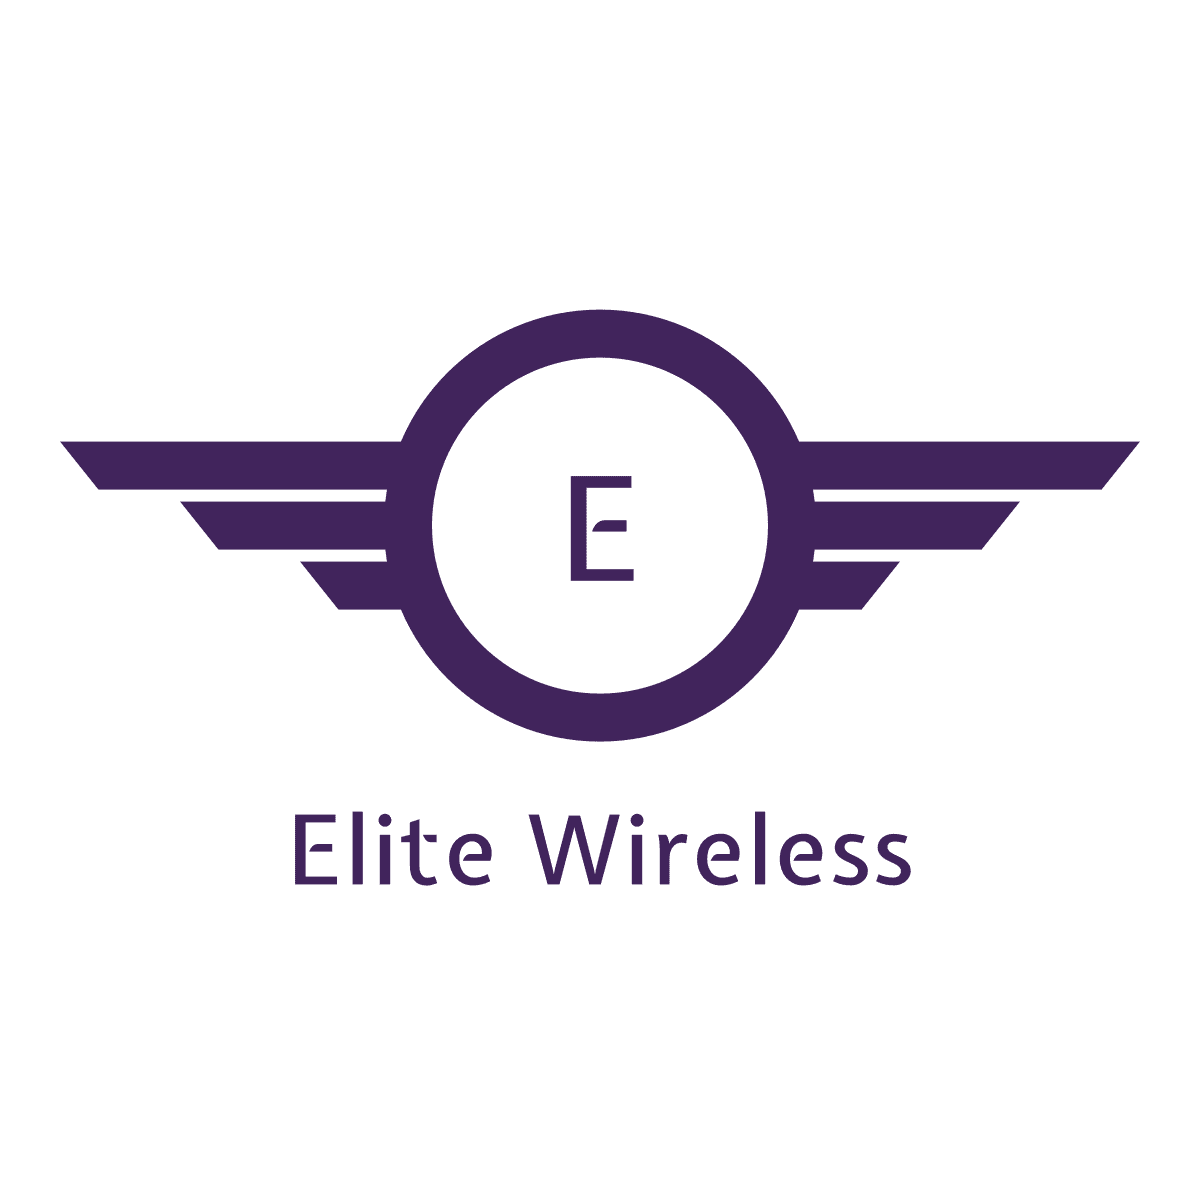 Elite Wireless, LLC